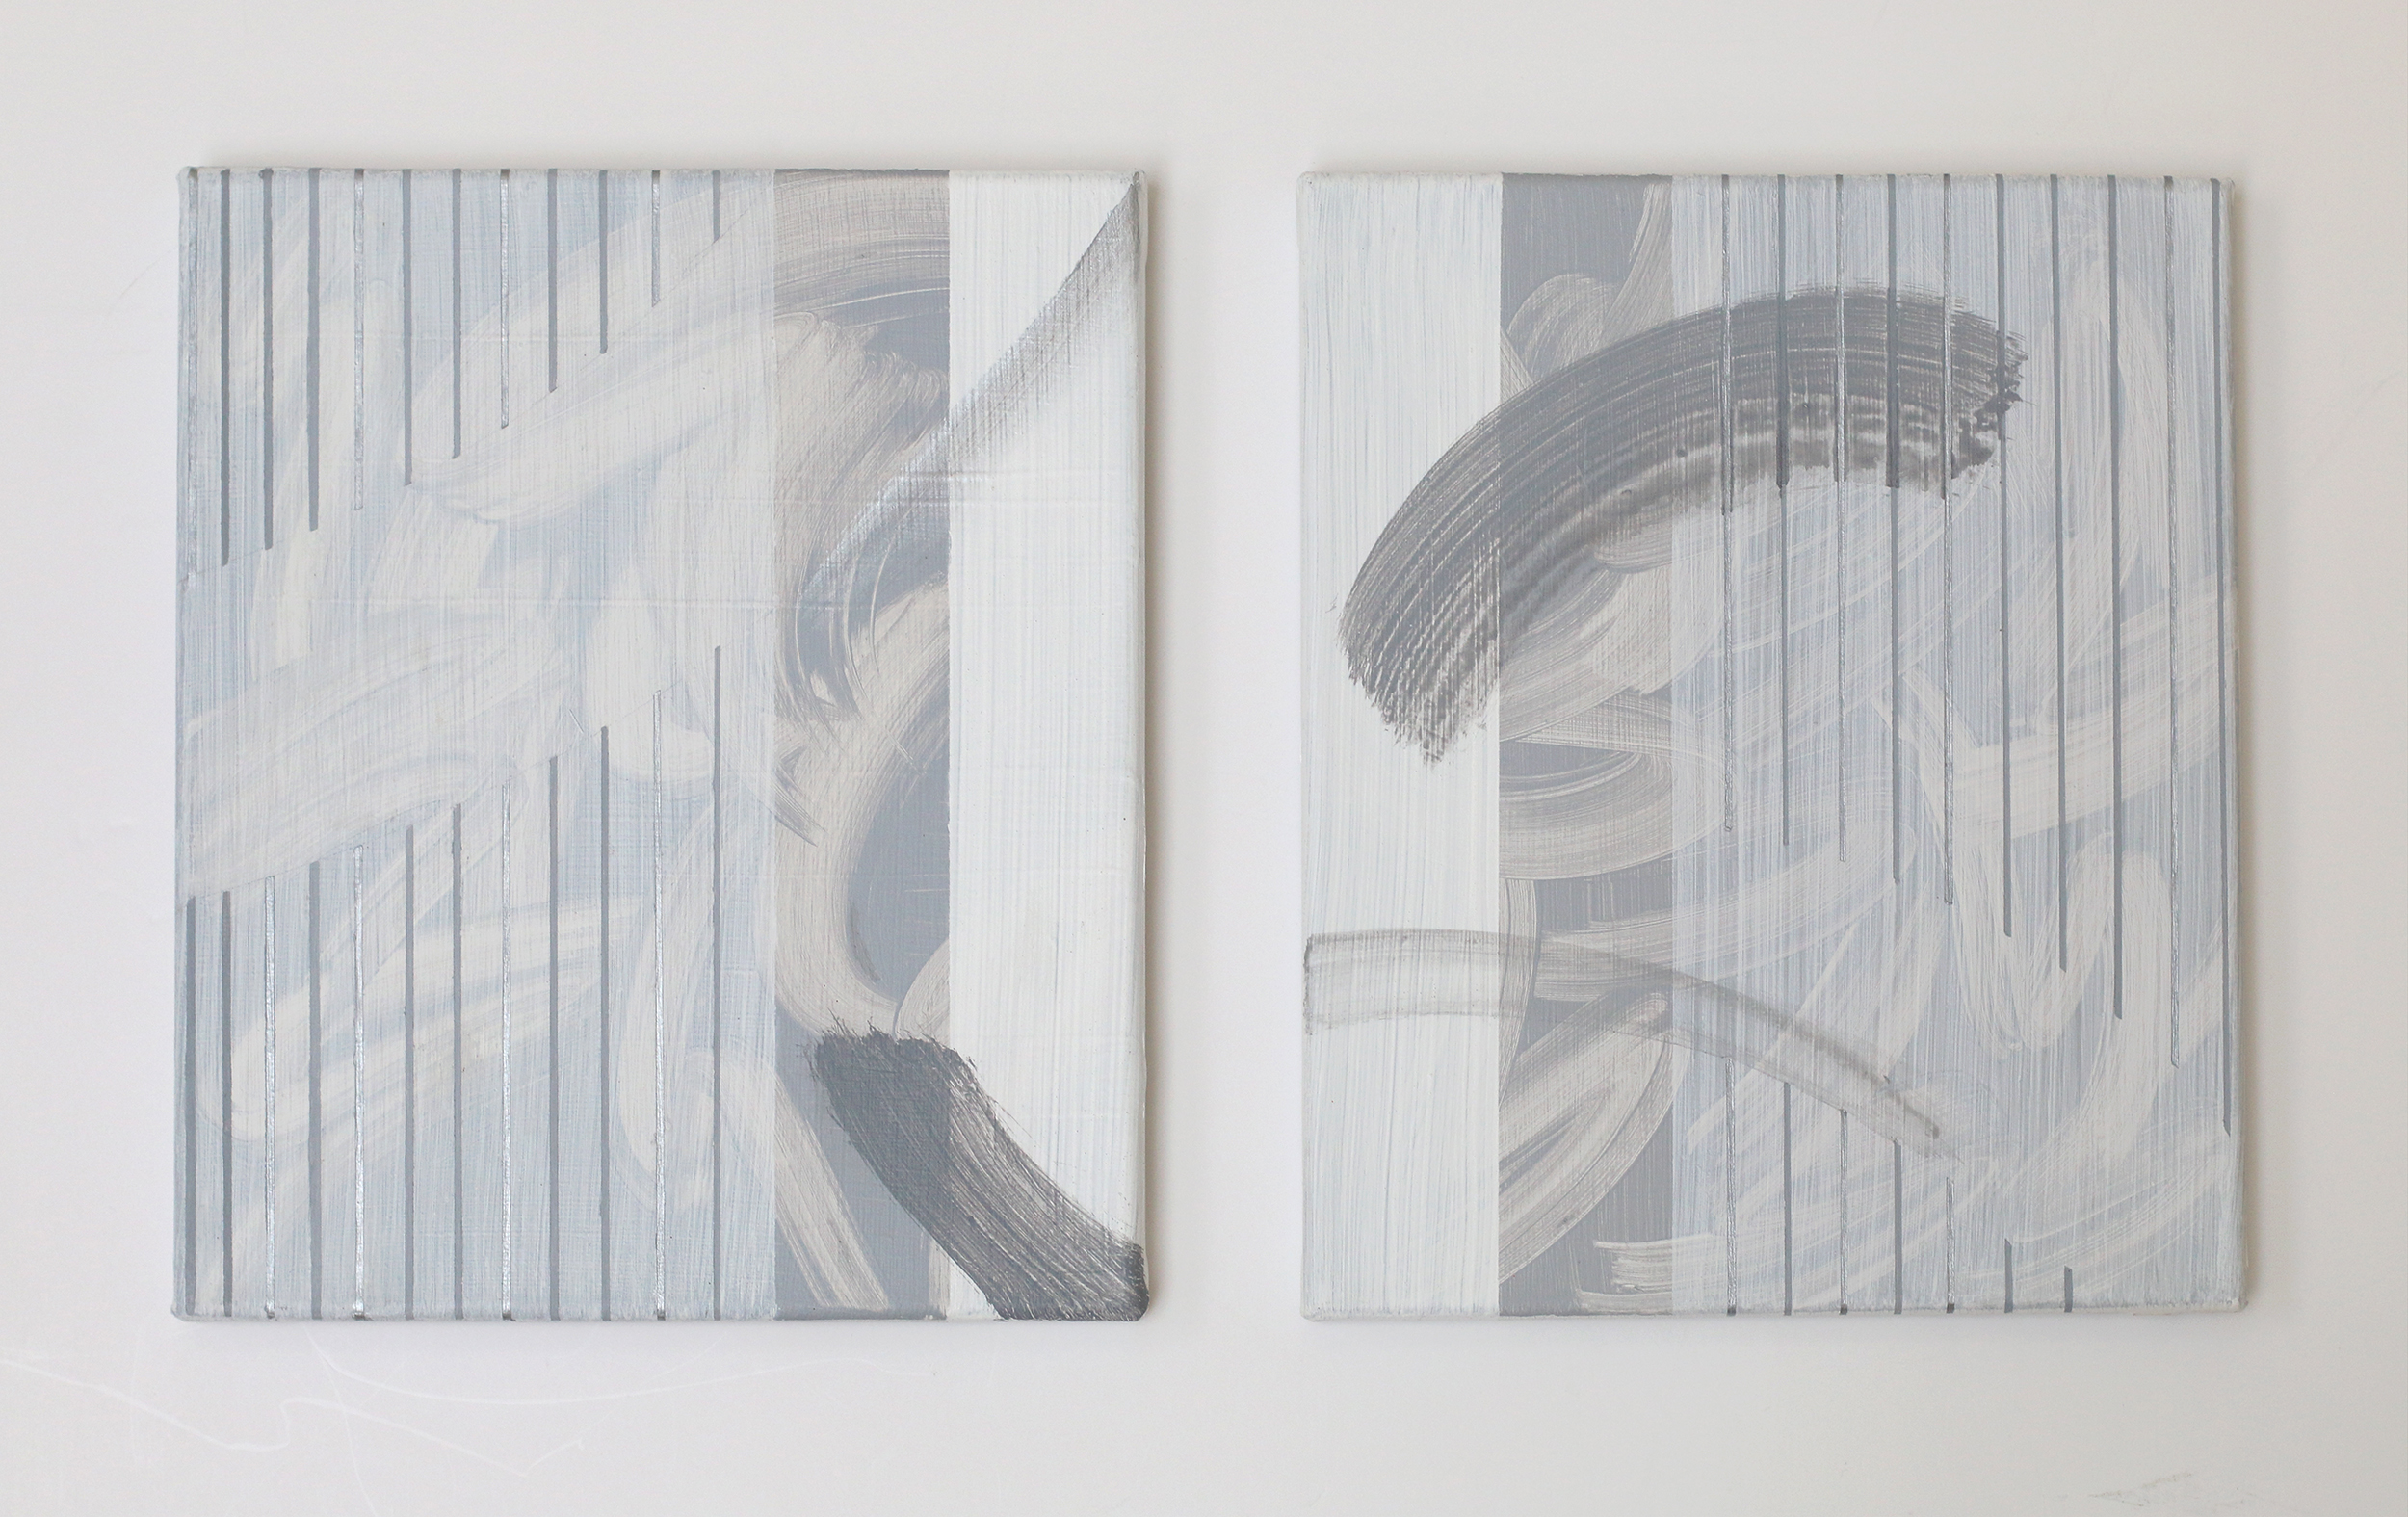 Zanny Mellor, The Auction Collective, Into Diptych